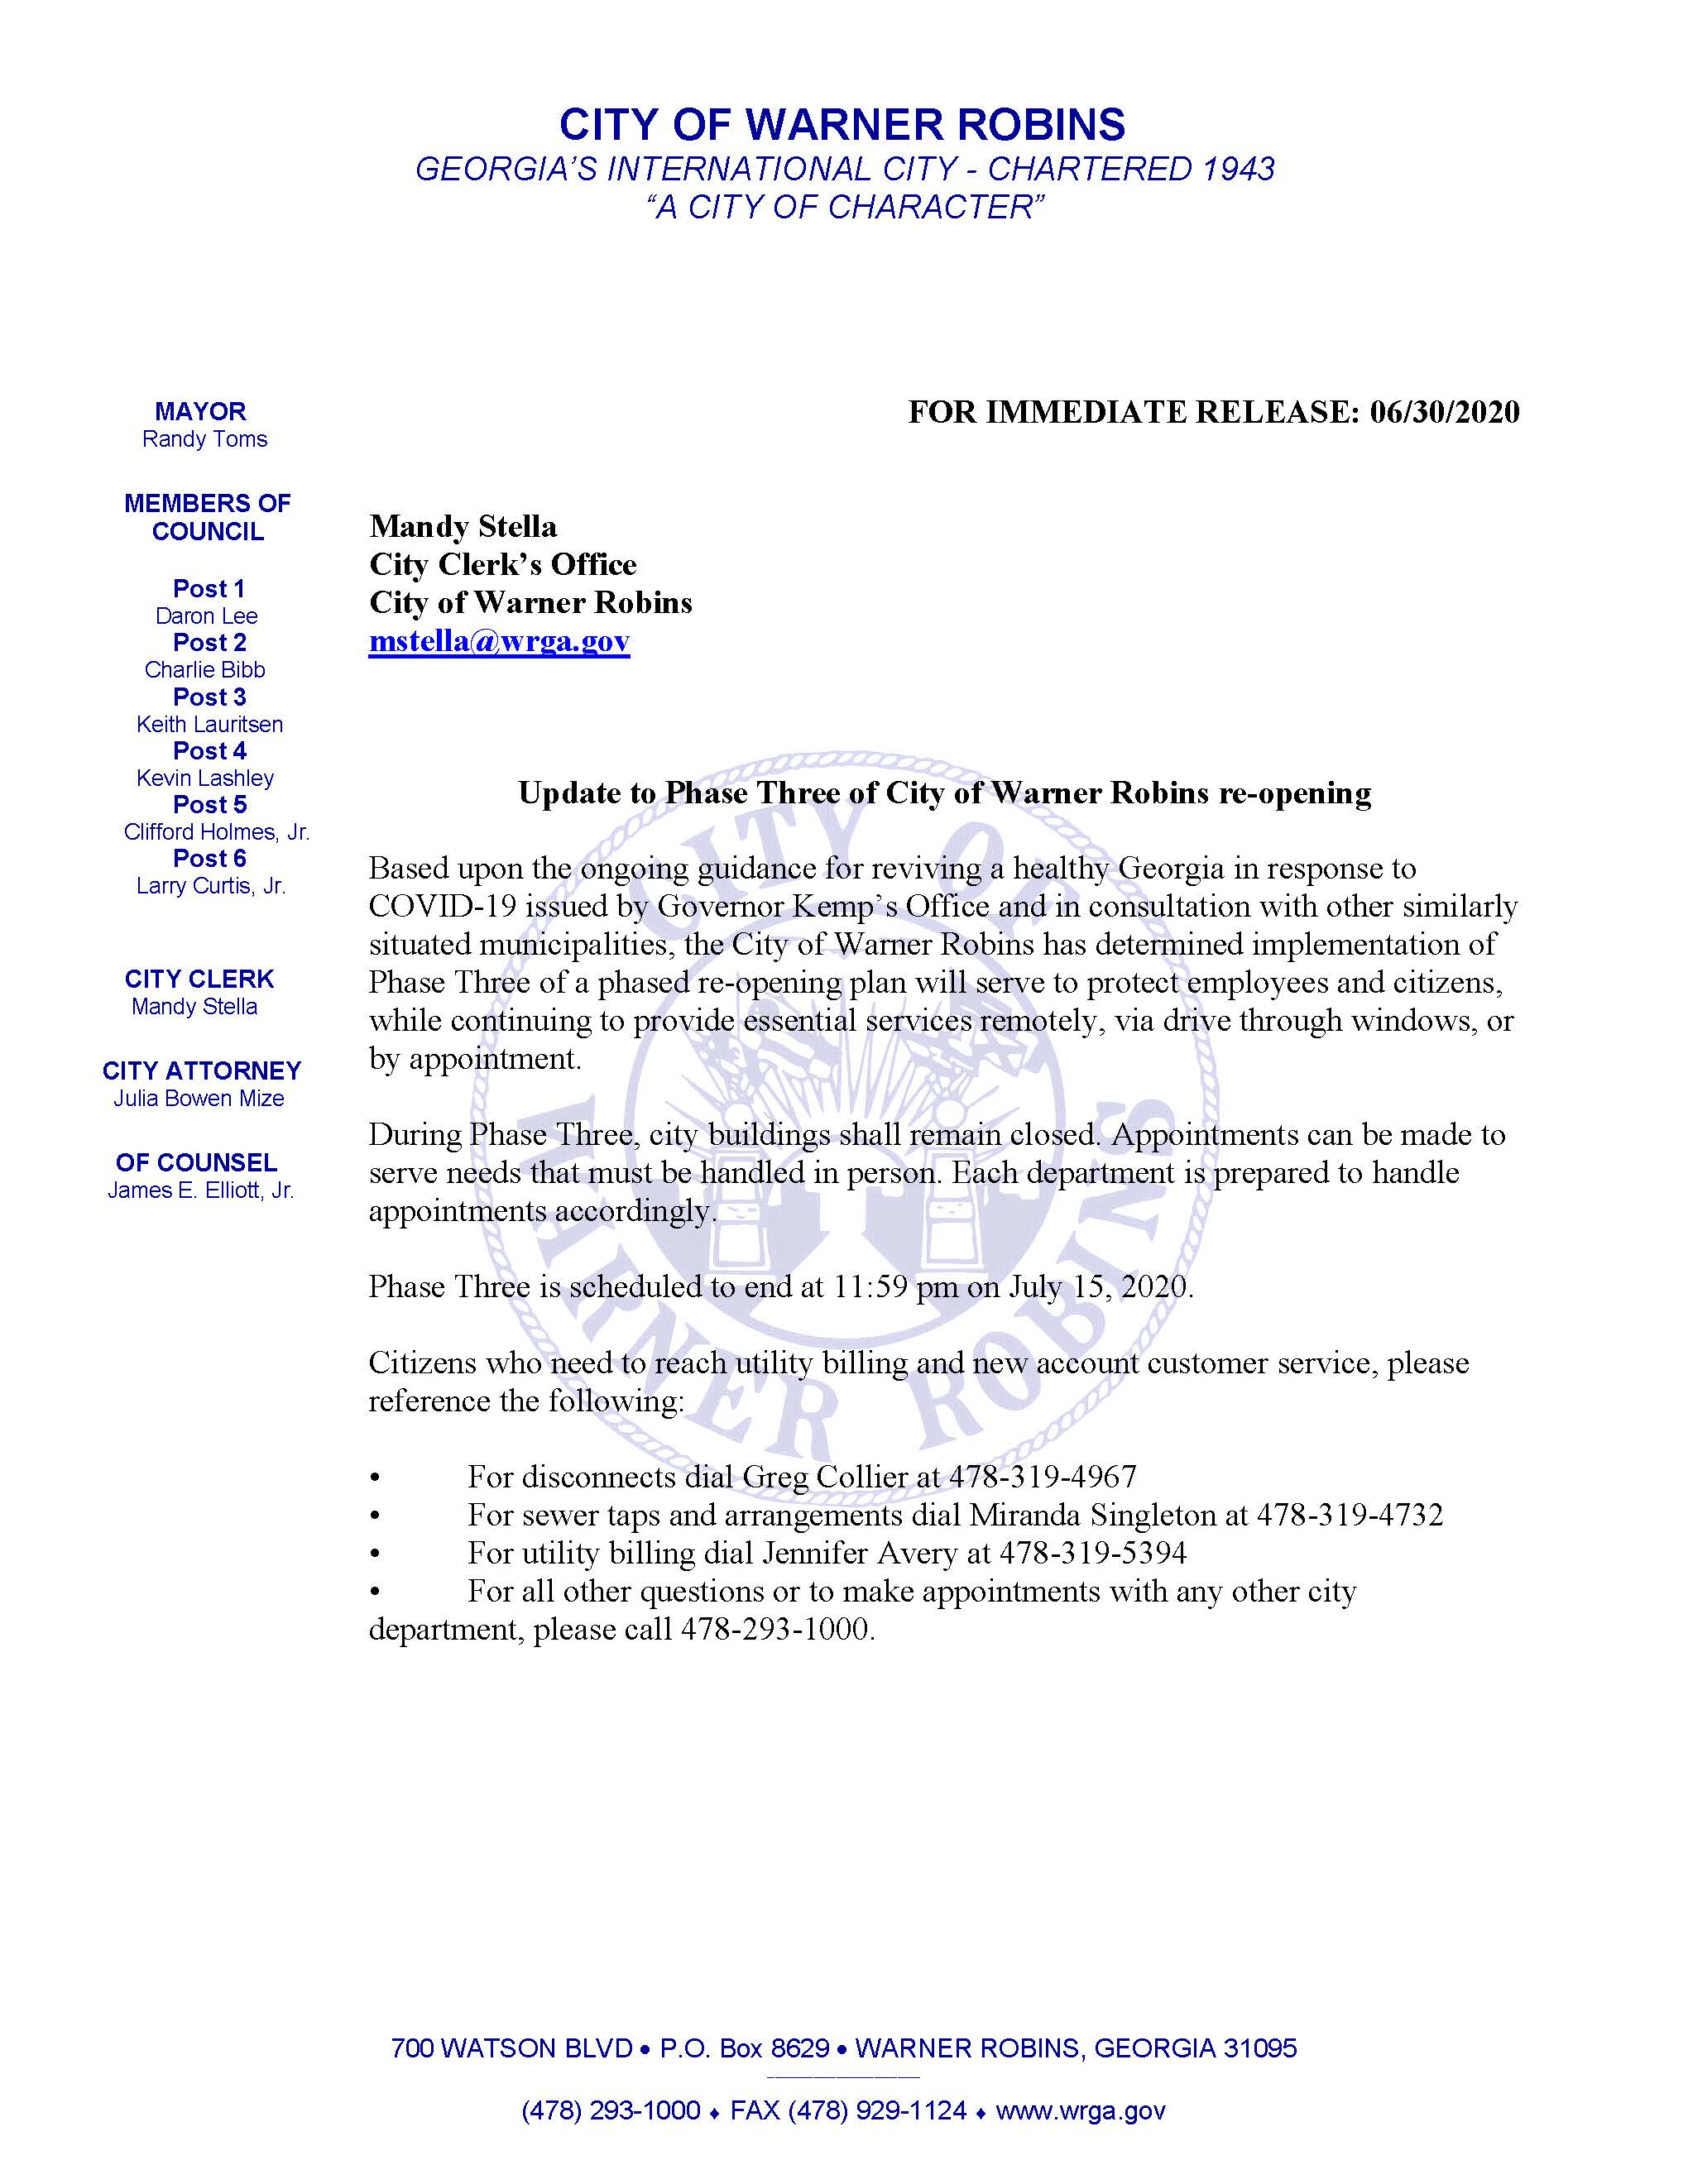 06302020 Update to Phase Three of City of Warner Robins reopening